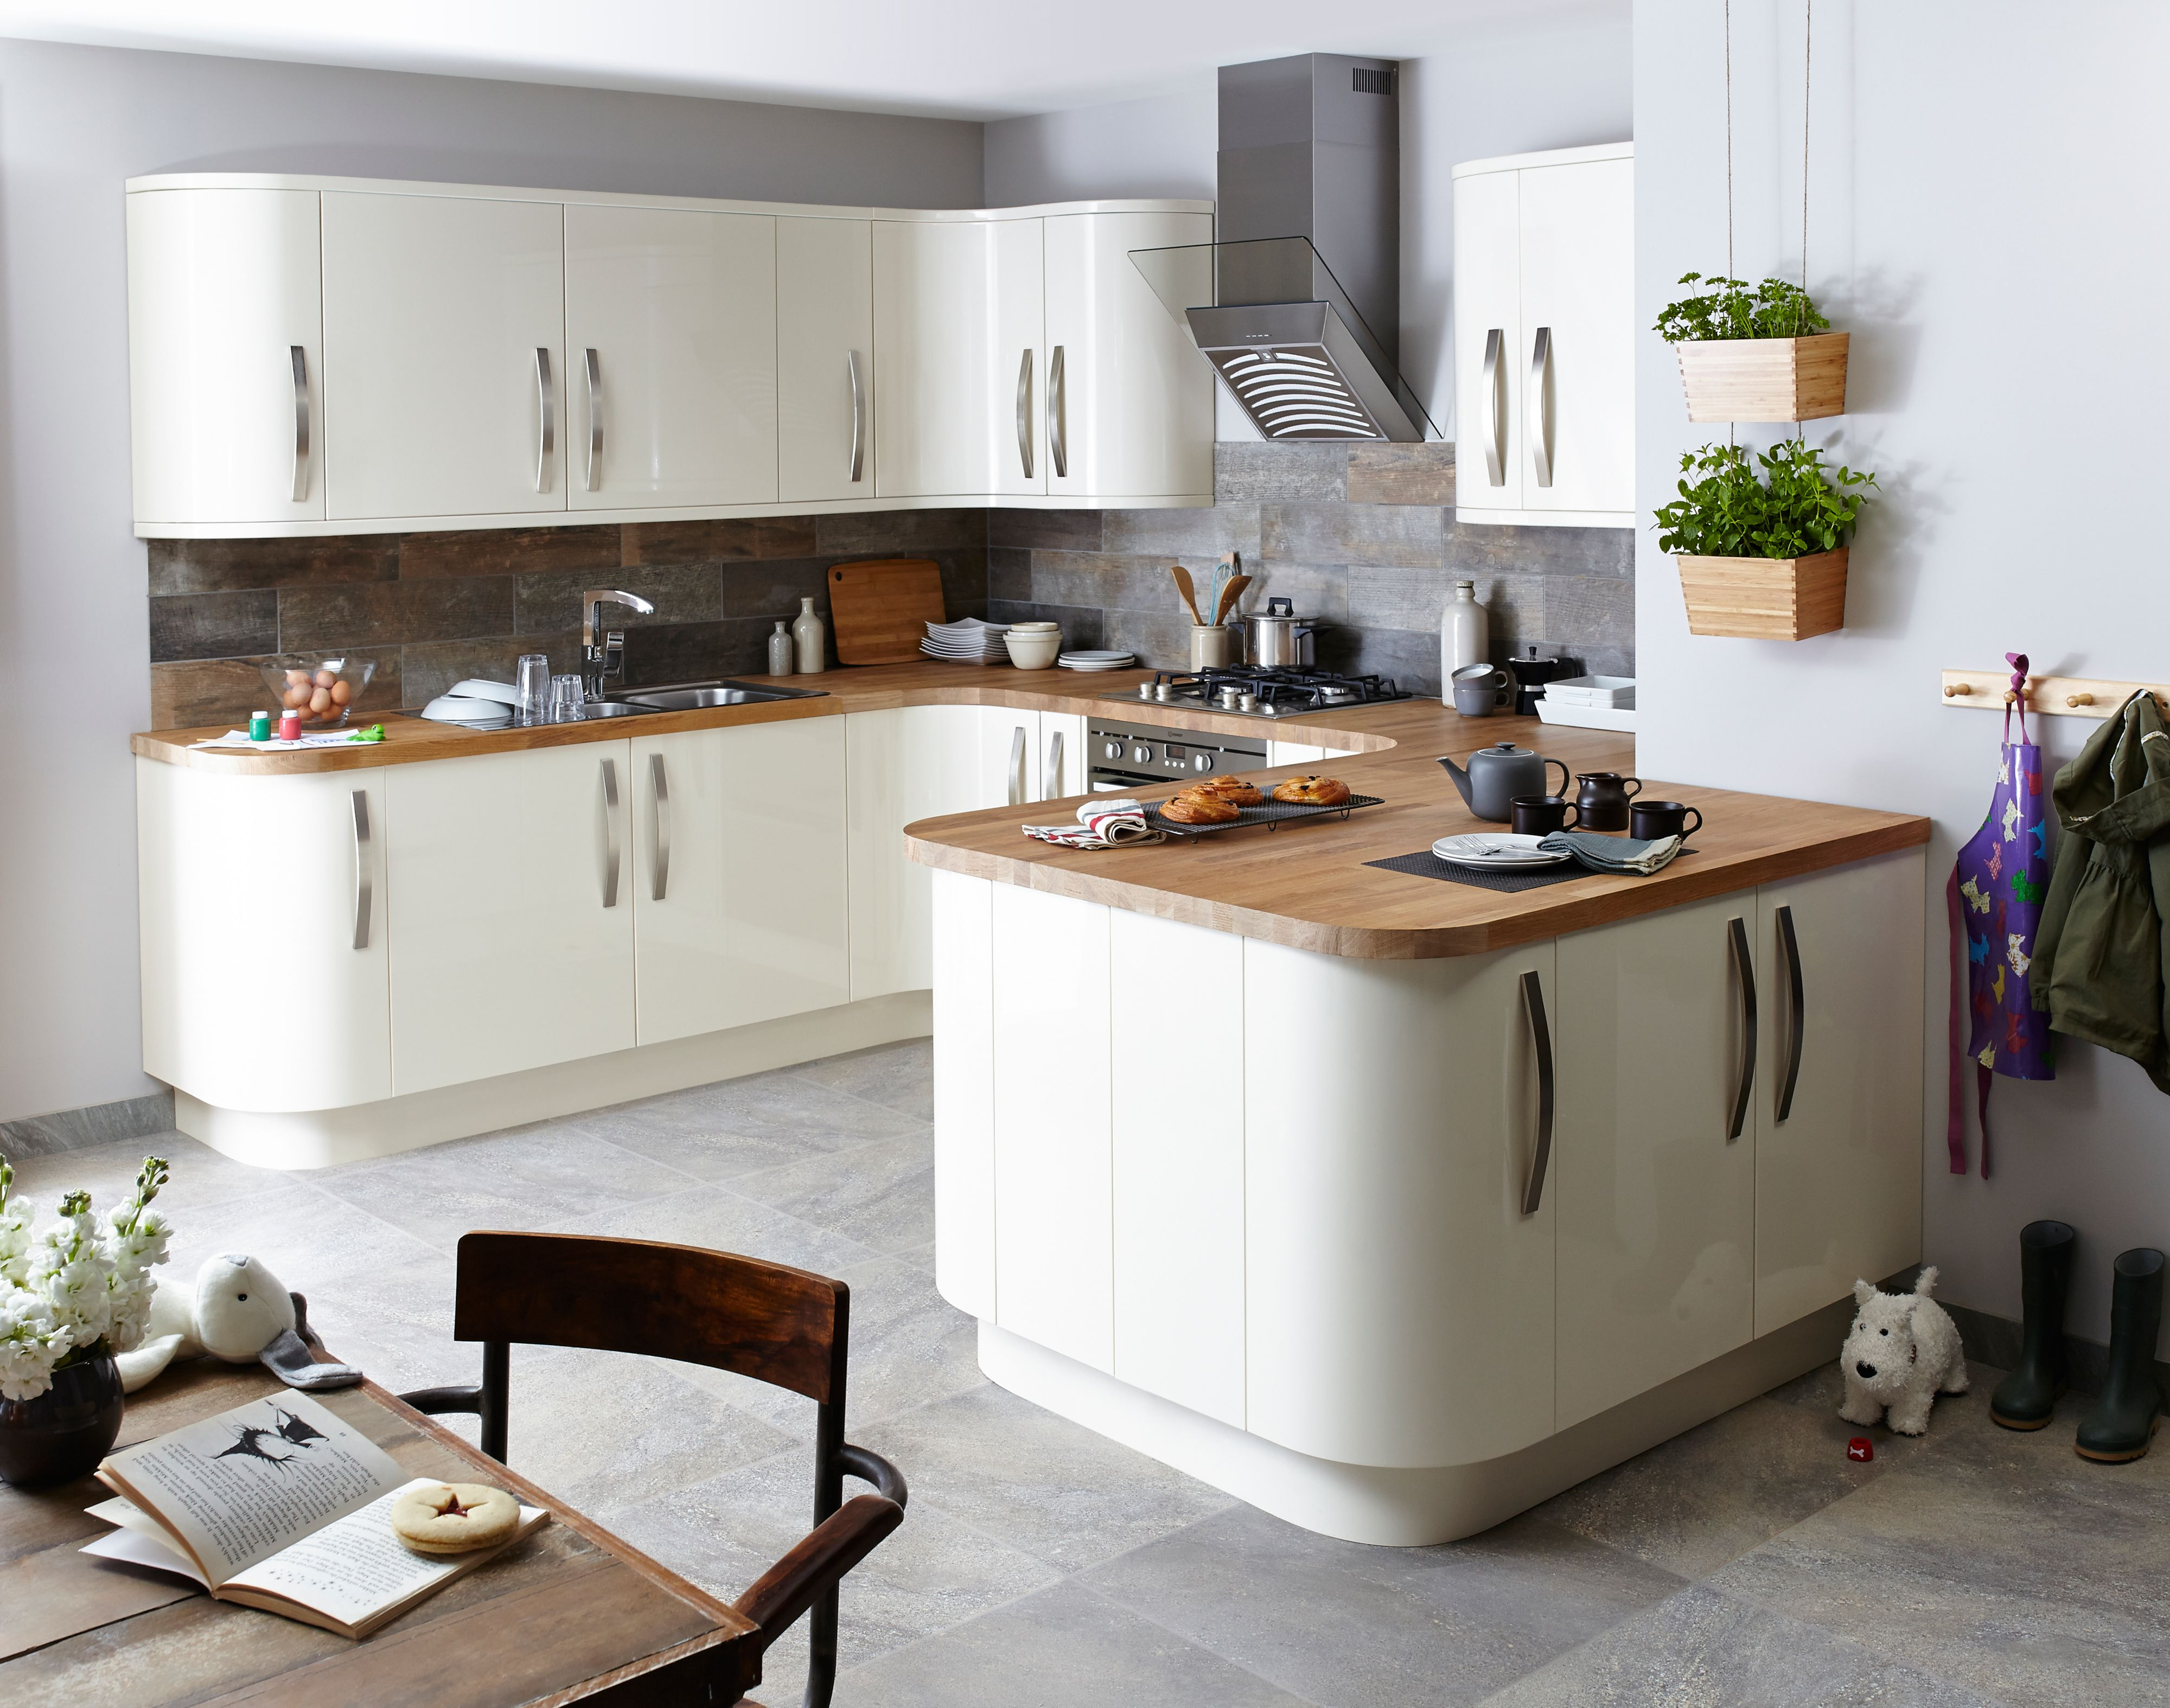 fitted kitchen santini BABEOQY